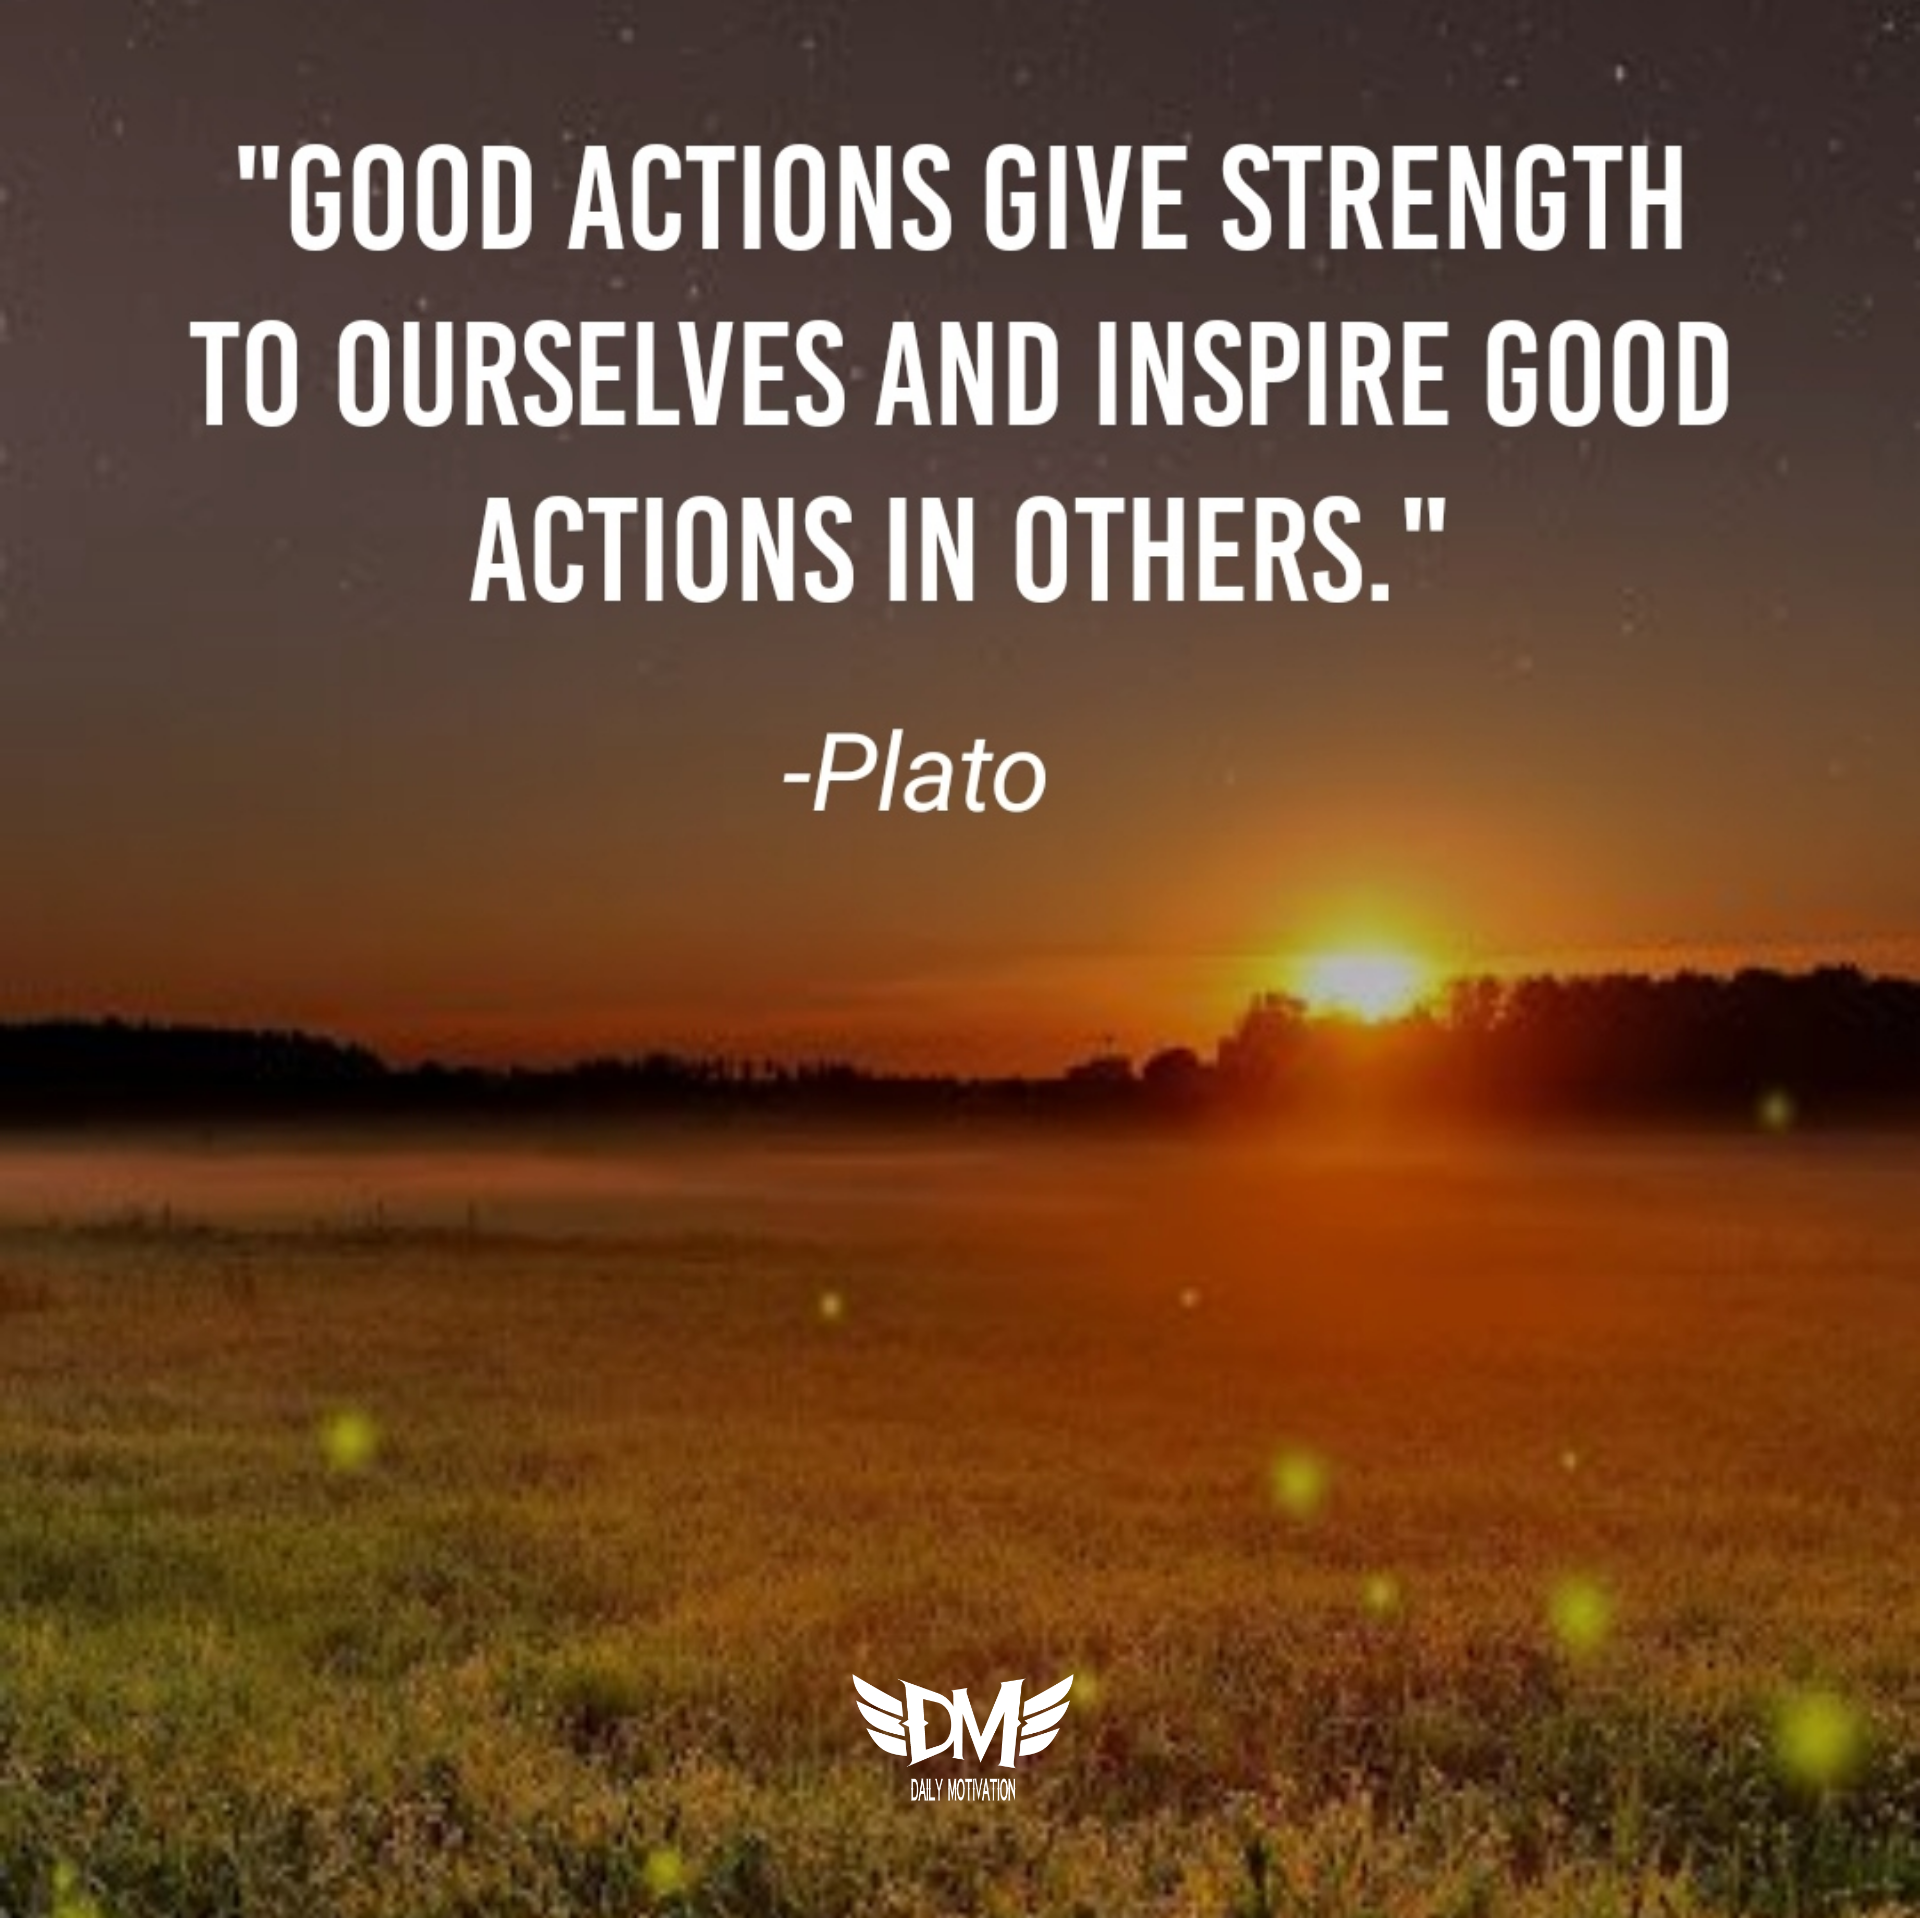 """Good actions give strength to ourselves and inspire good actions in others"" – Plato [1920 x 1918]"